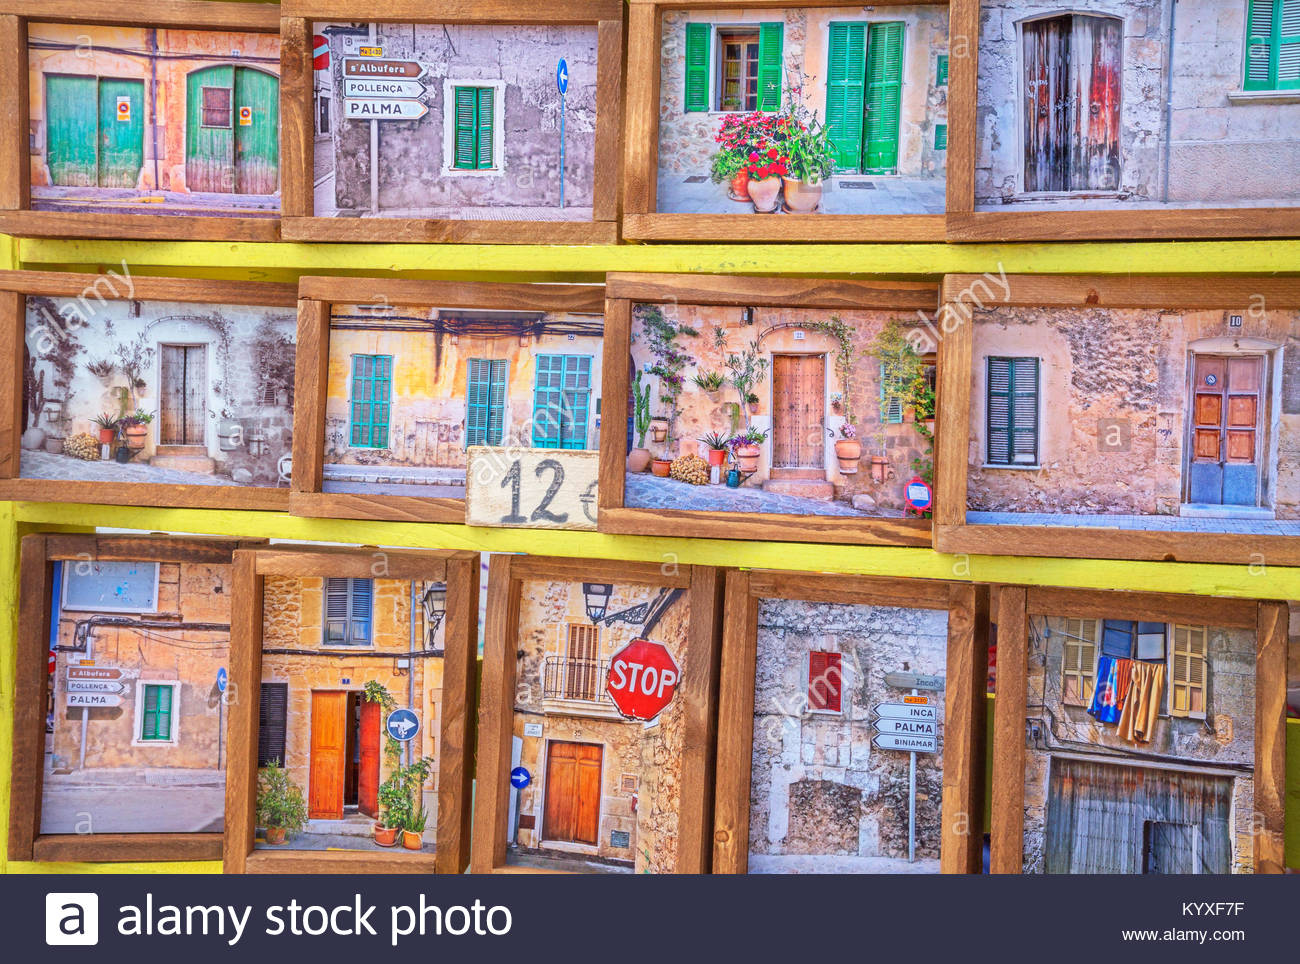 Local market stand, Alcudia, Mallorca, Balearic Islands, Spain, Europe - Stock Image